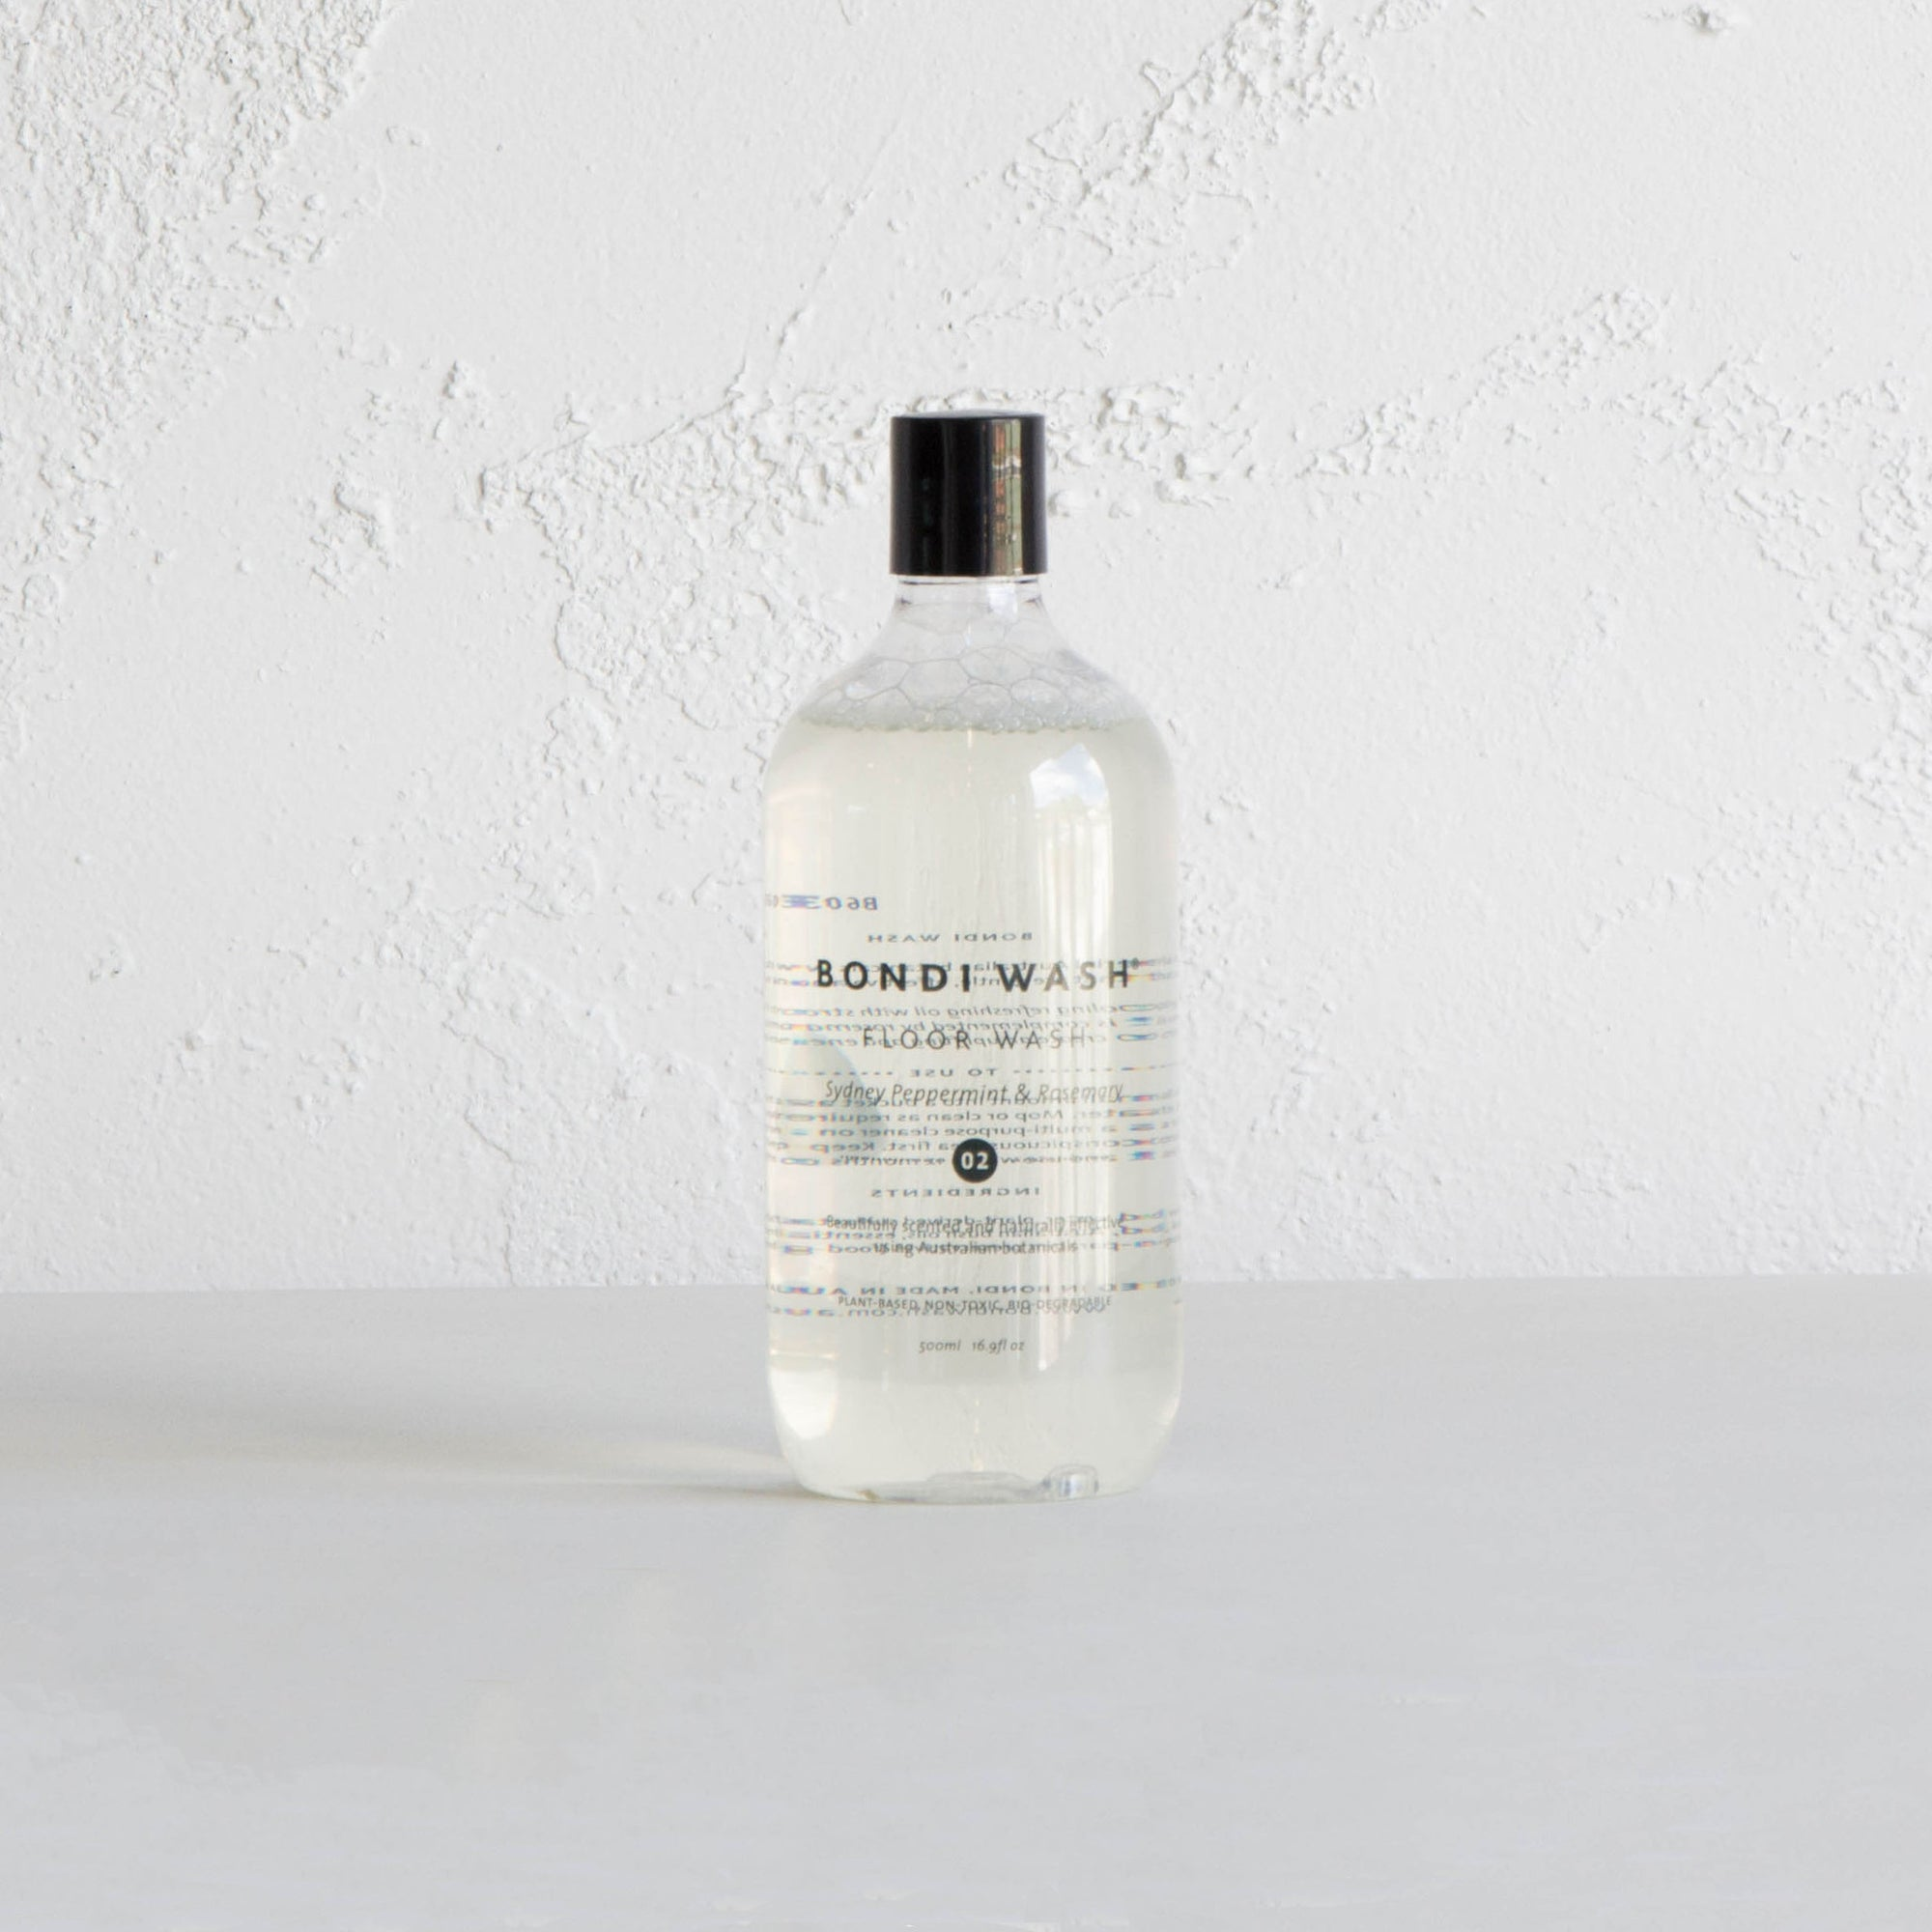 BONDI WASH FLOOR WASH  |  SYDNEY PEPPERMINT & ROSEMARY